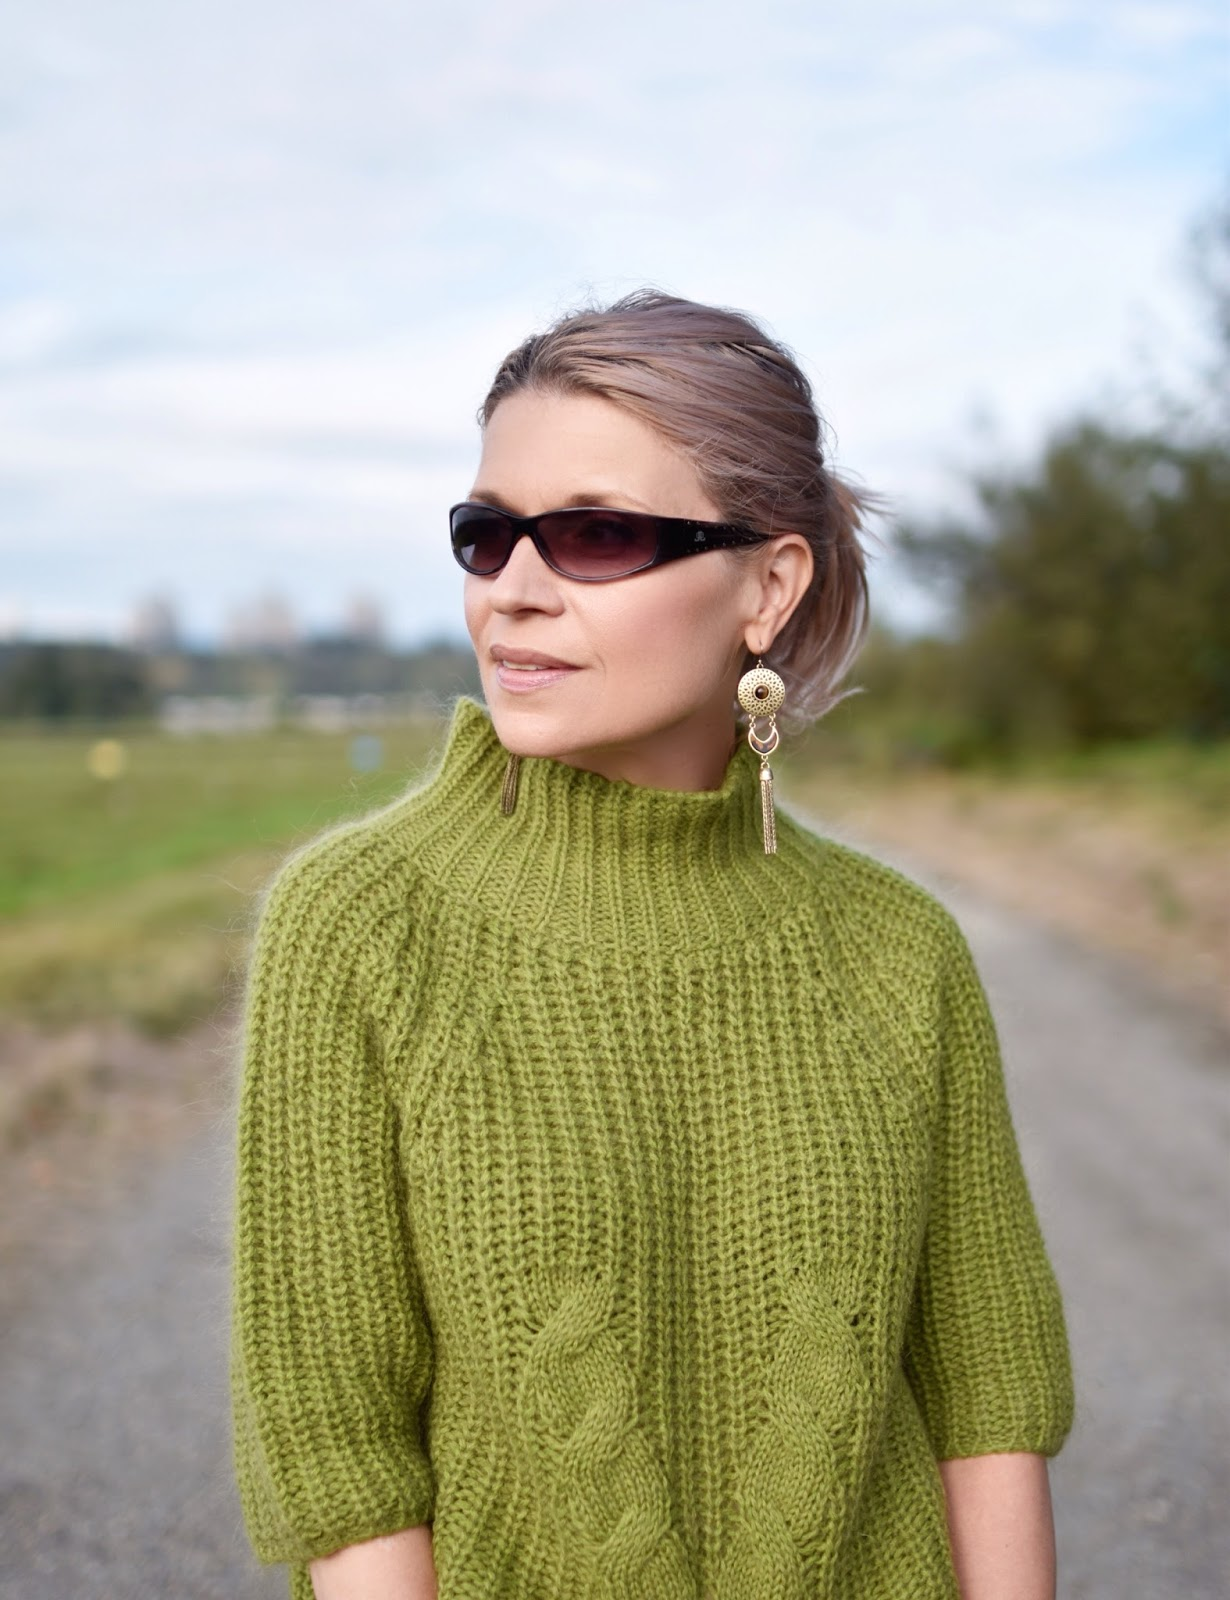 Monika Faulkner outfit inspiration - green mohair sweater, JLo sunglasses